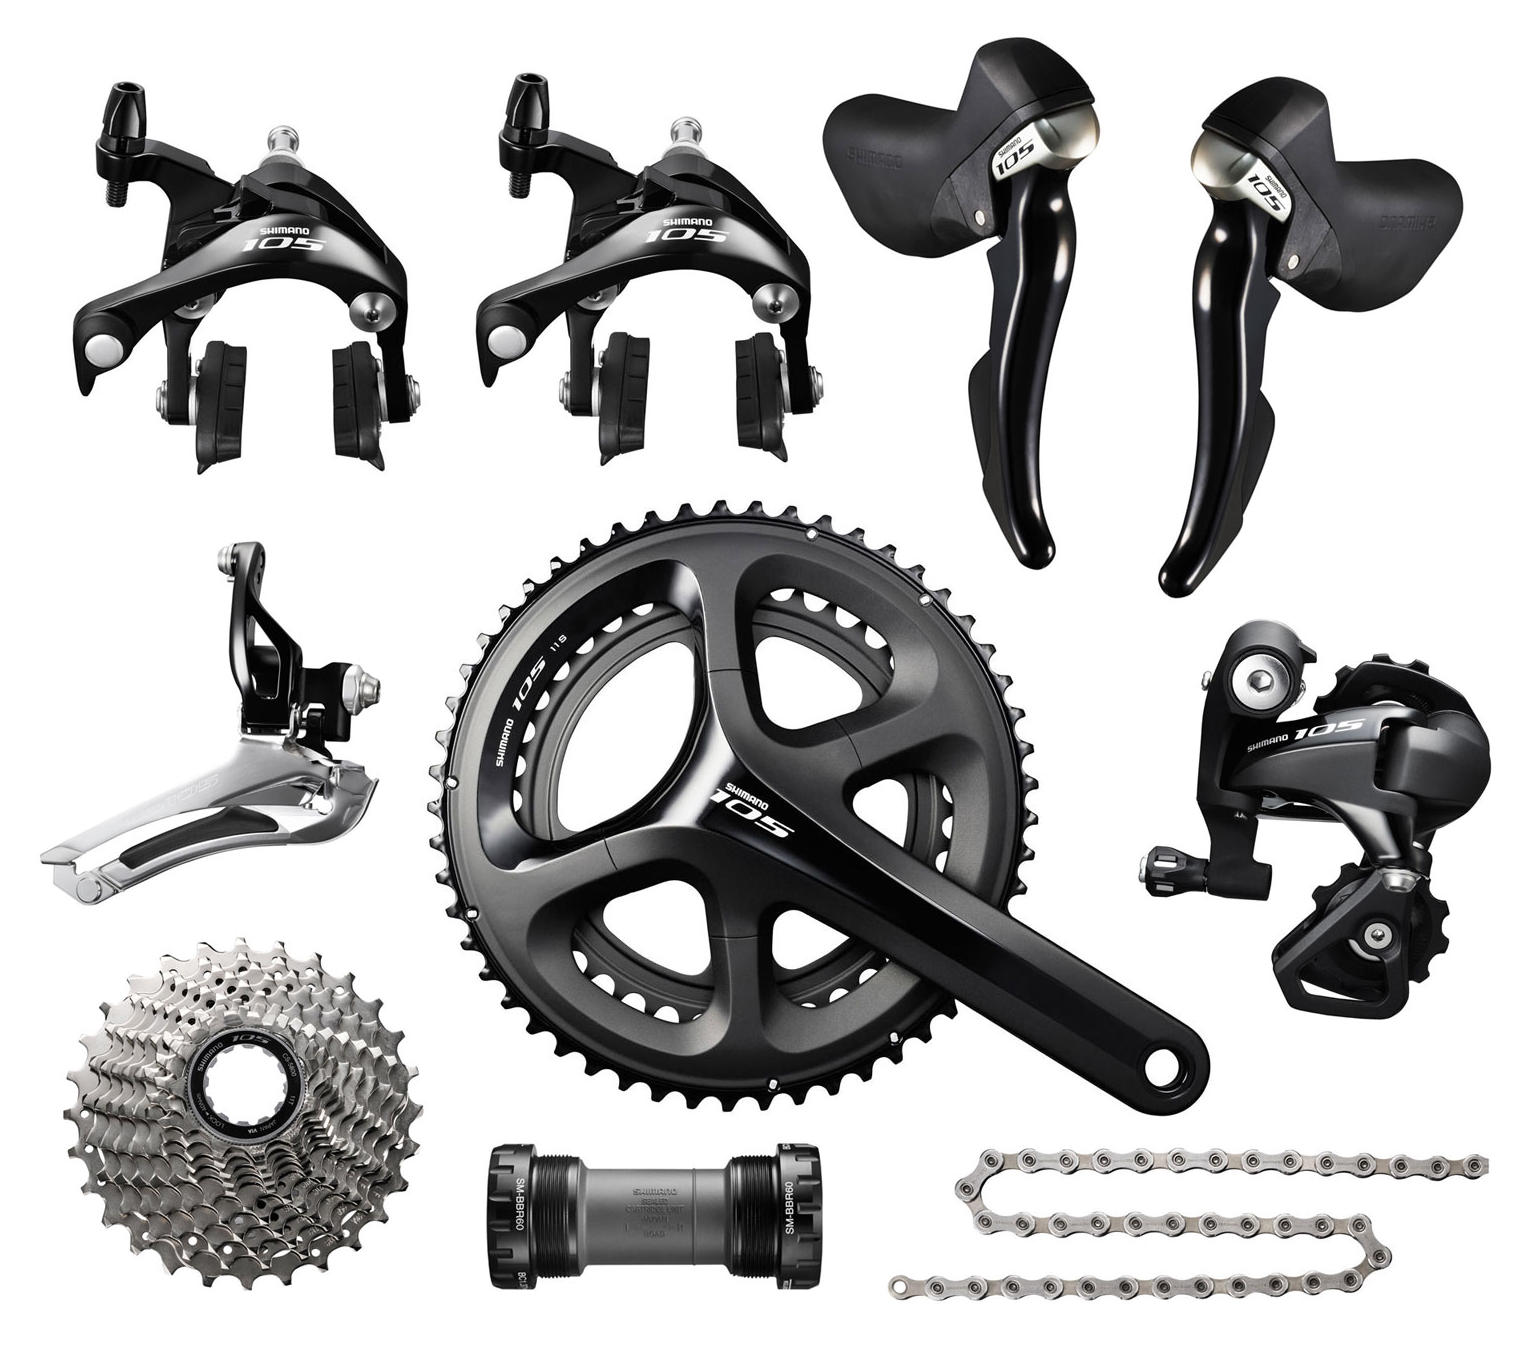 Shimano Groupset 5800 11V 50/34T 172.5mm 11-28T - Black